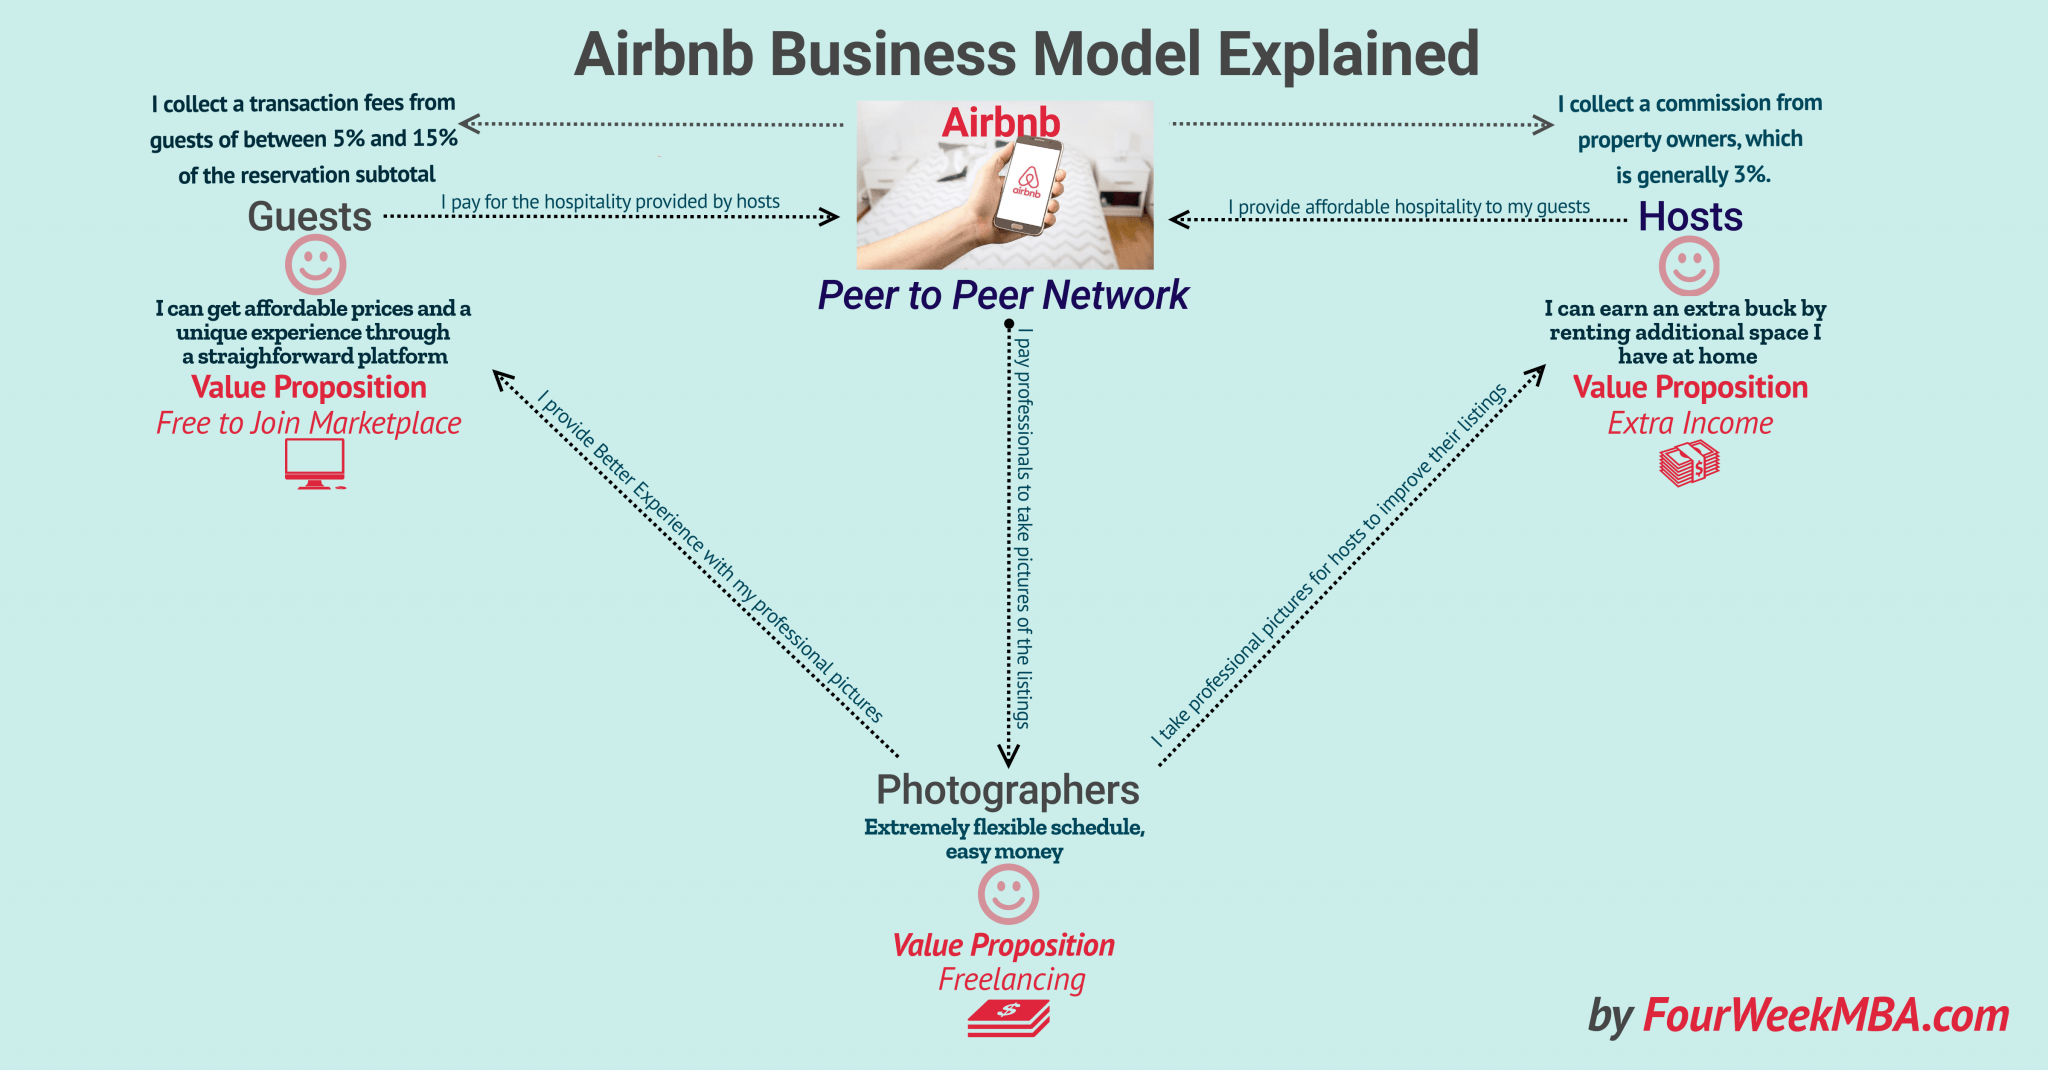 airbnb-business-model-explained